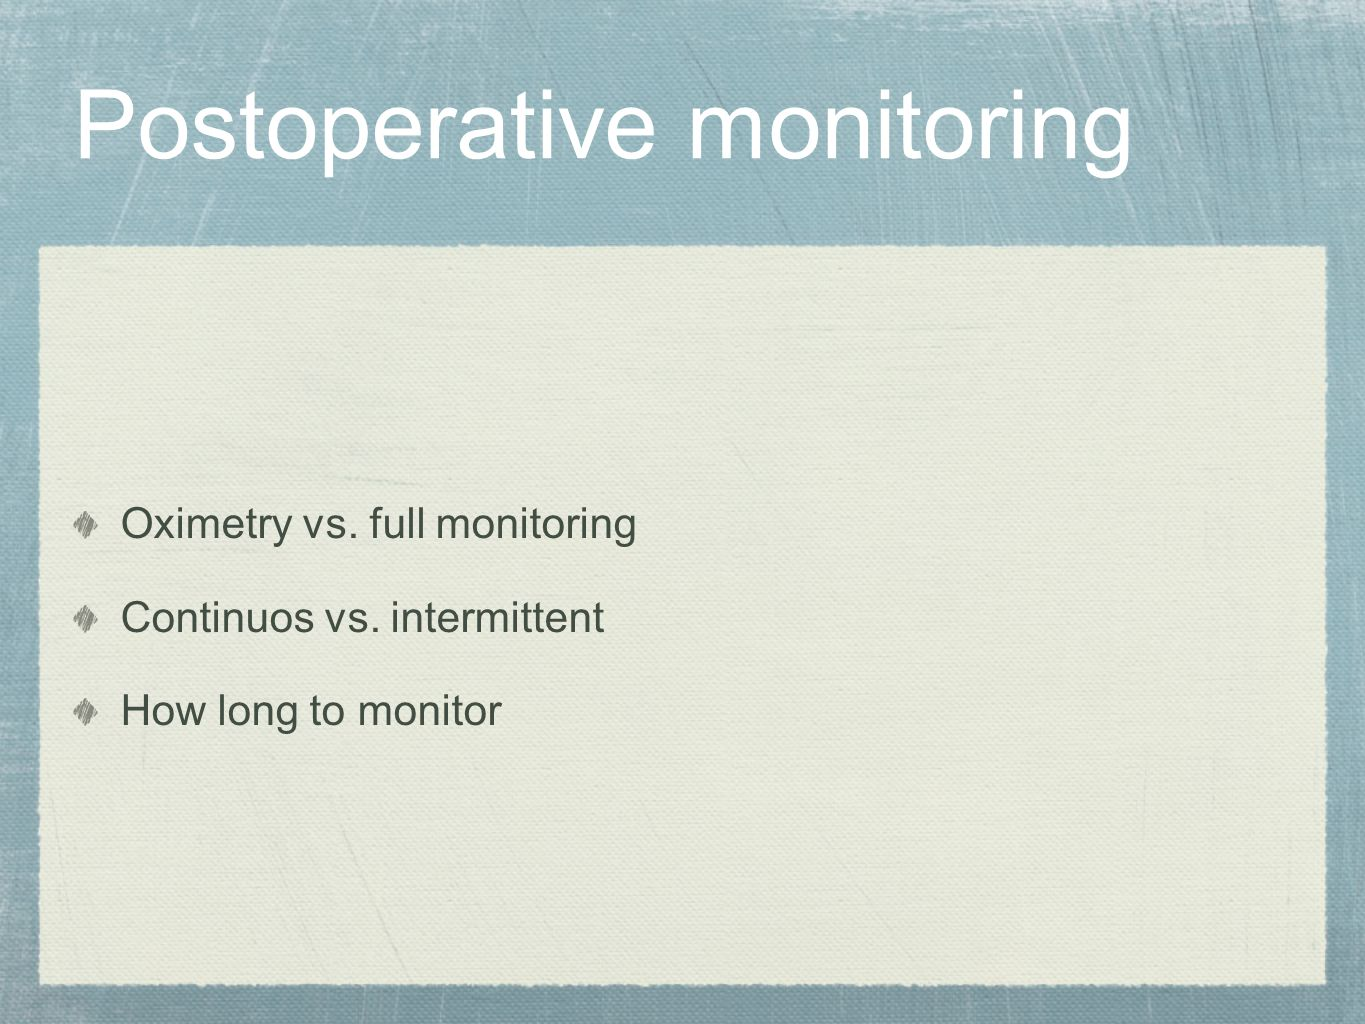 Postoperative monitoring